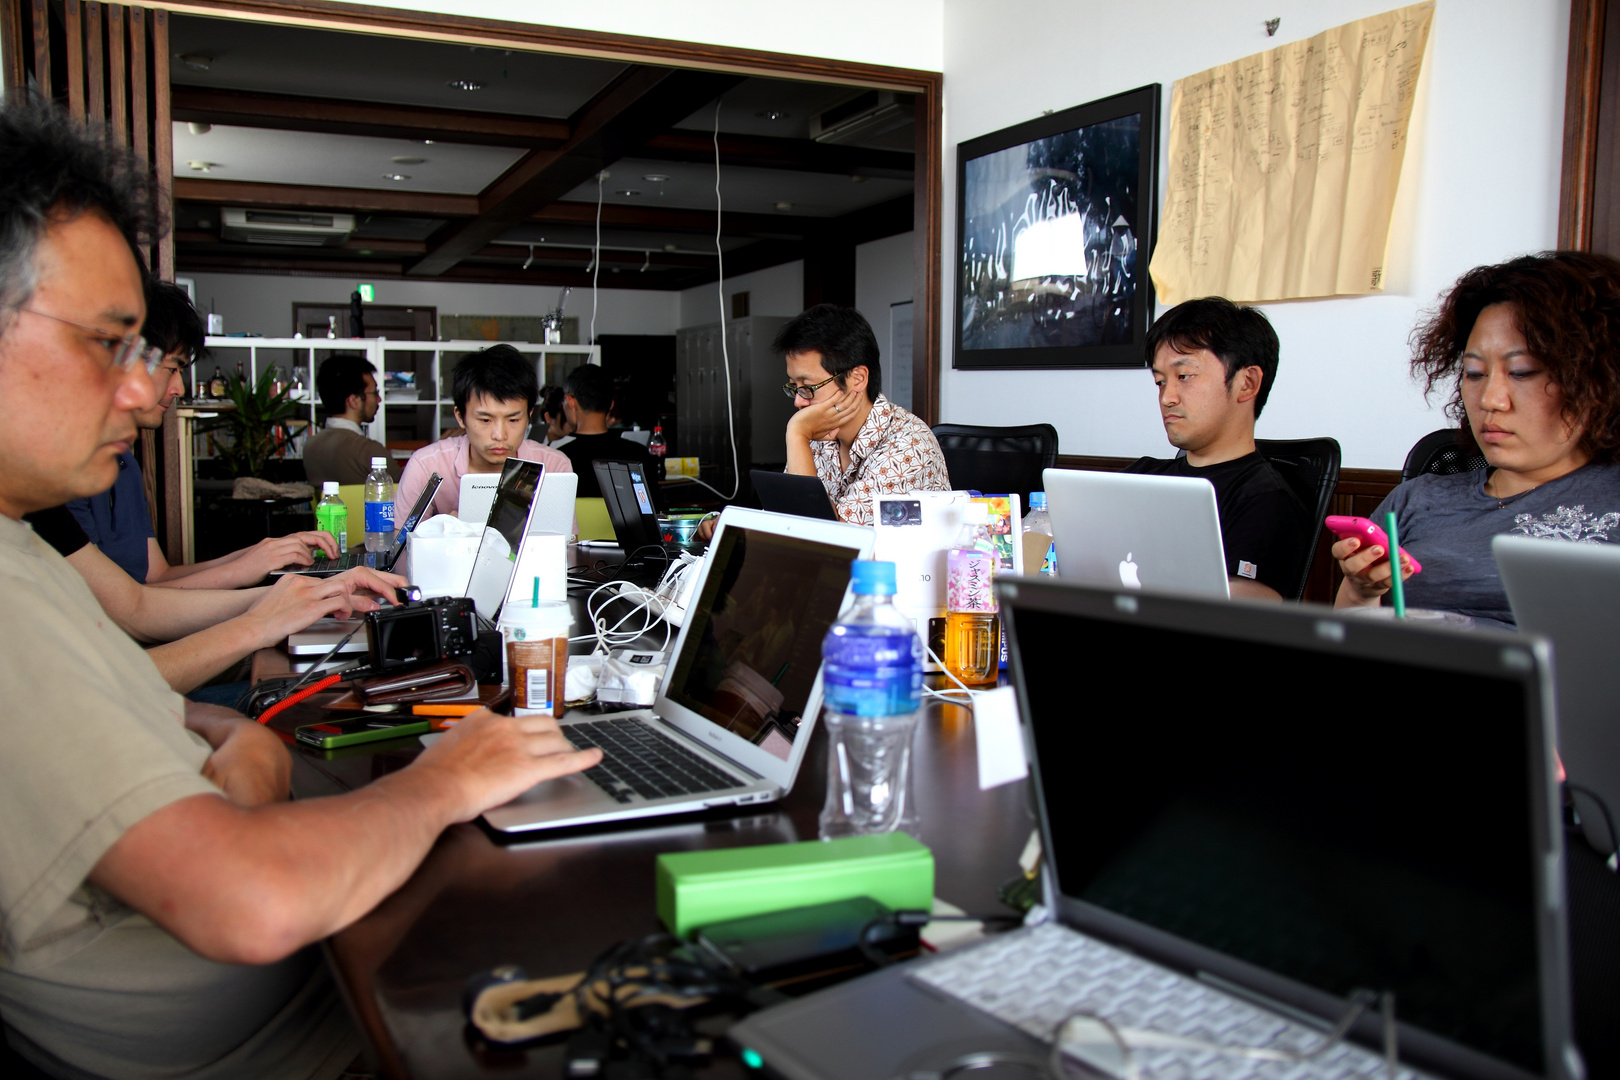 just working in Coworking space (PAX Coworking)